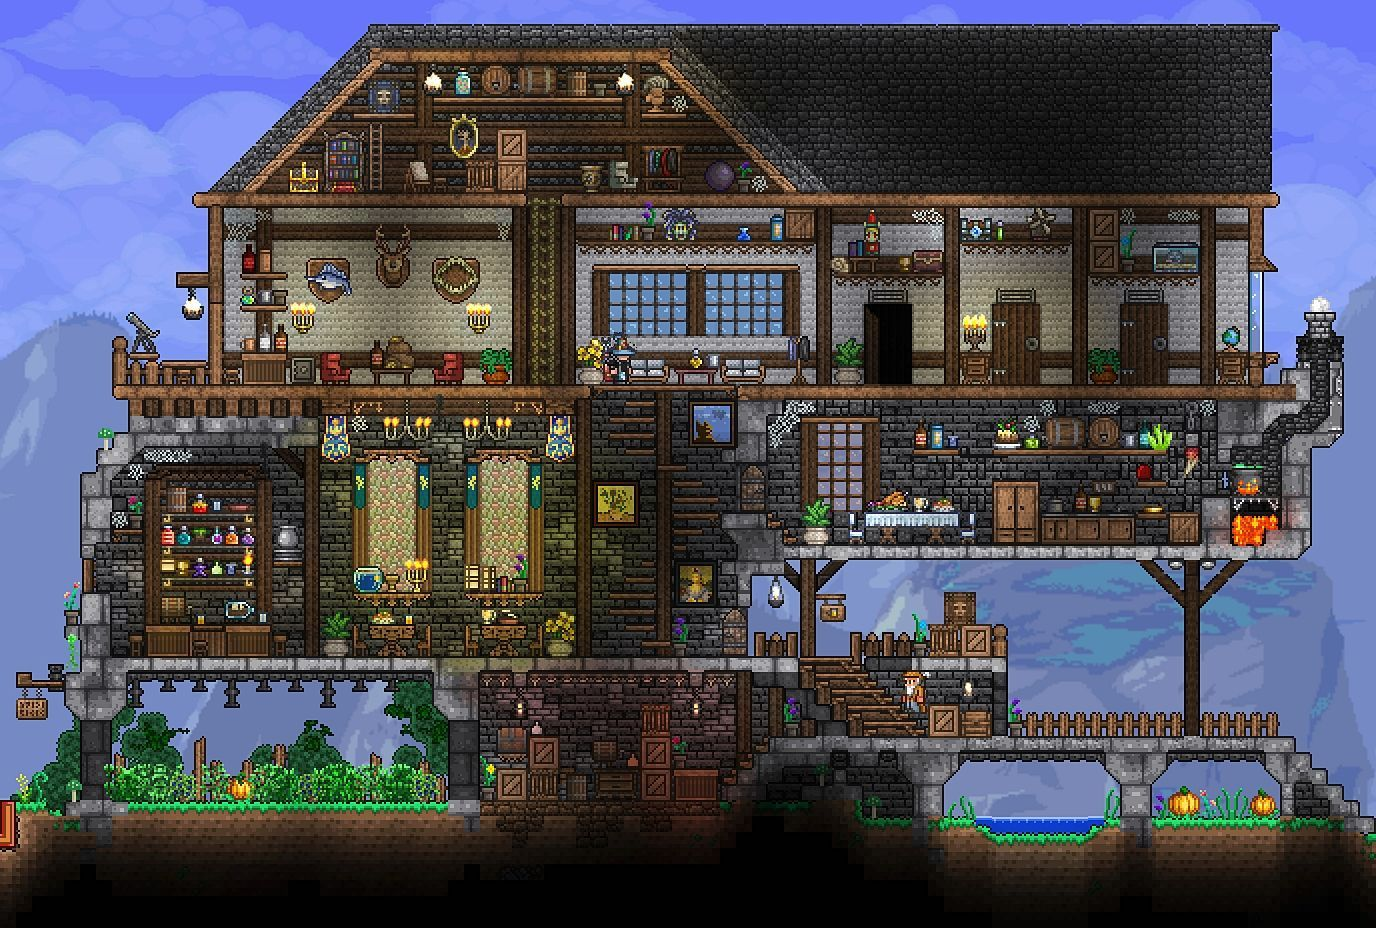 Pin By Debra Taylor On Terraria Terraria House Ideas Terraria